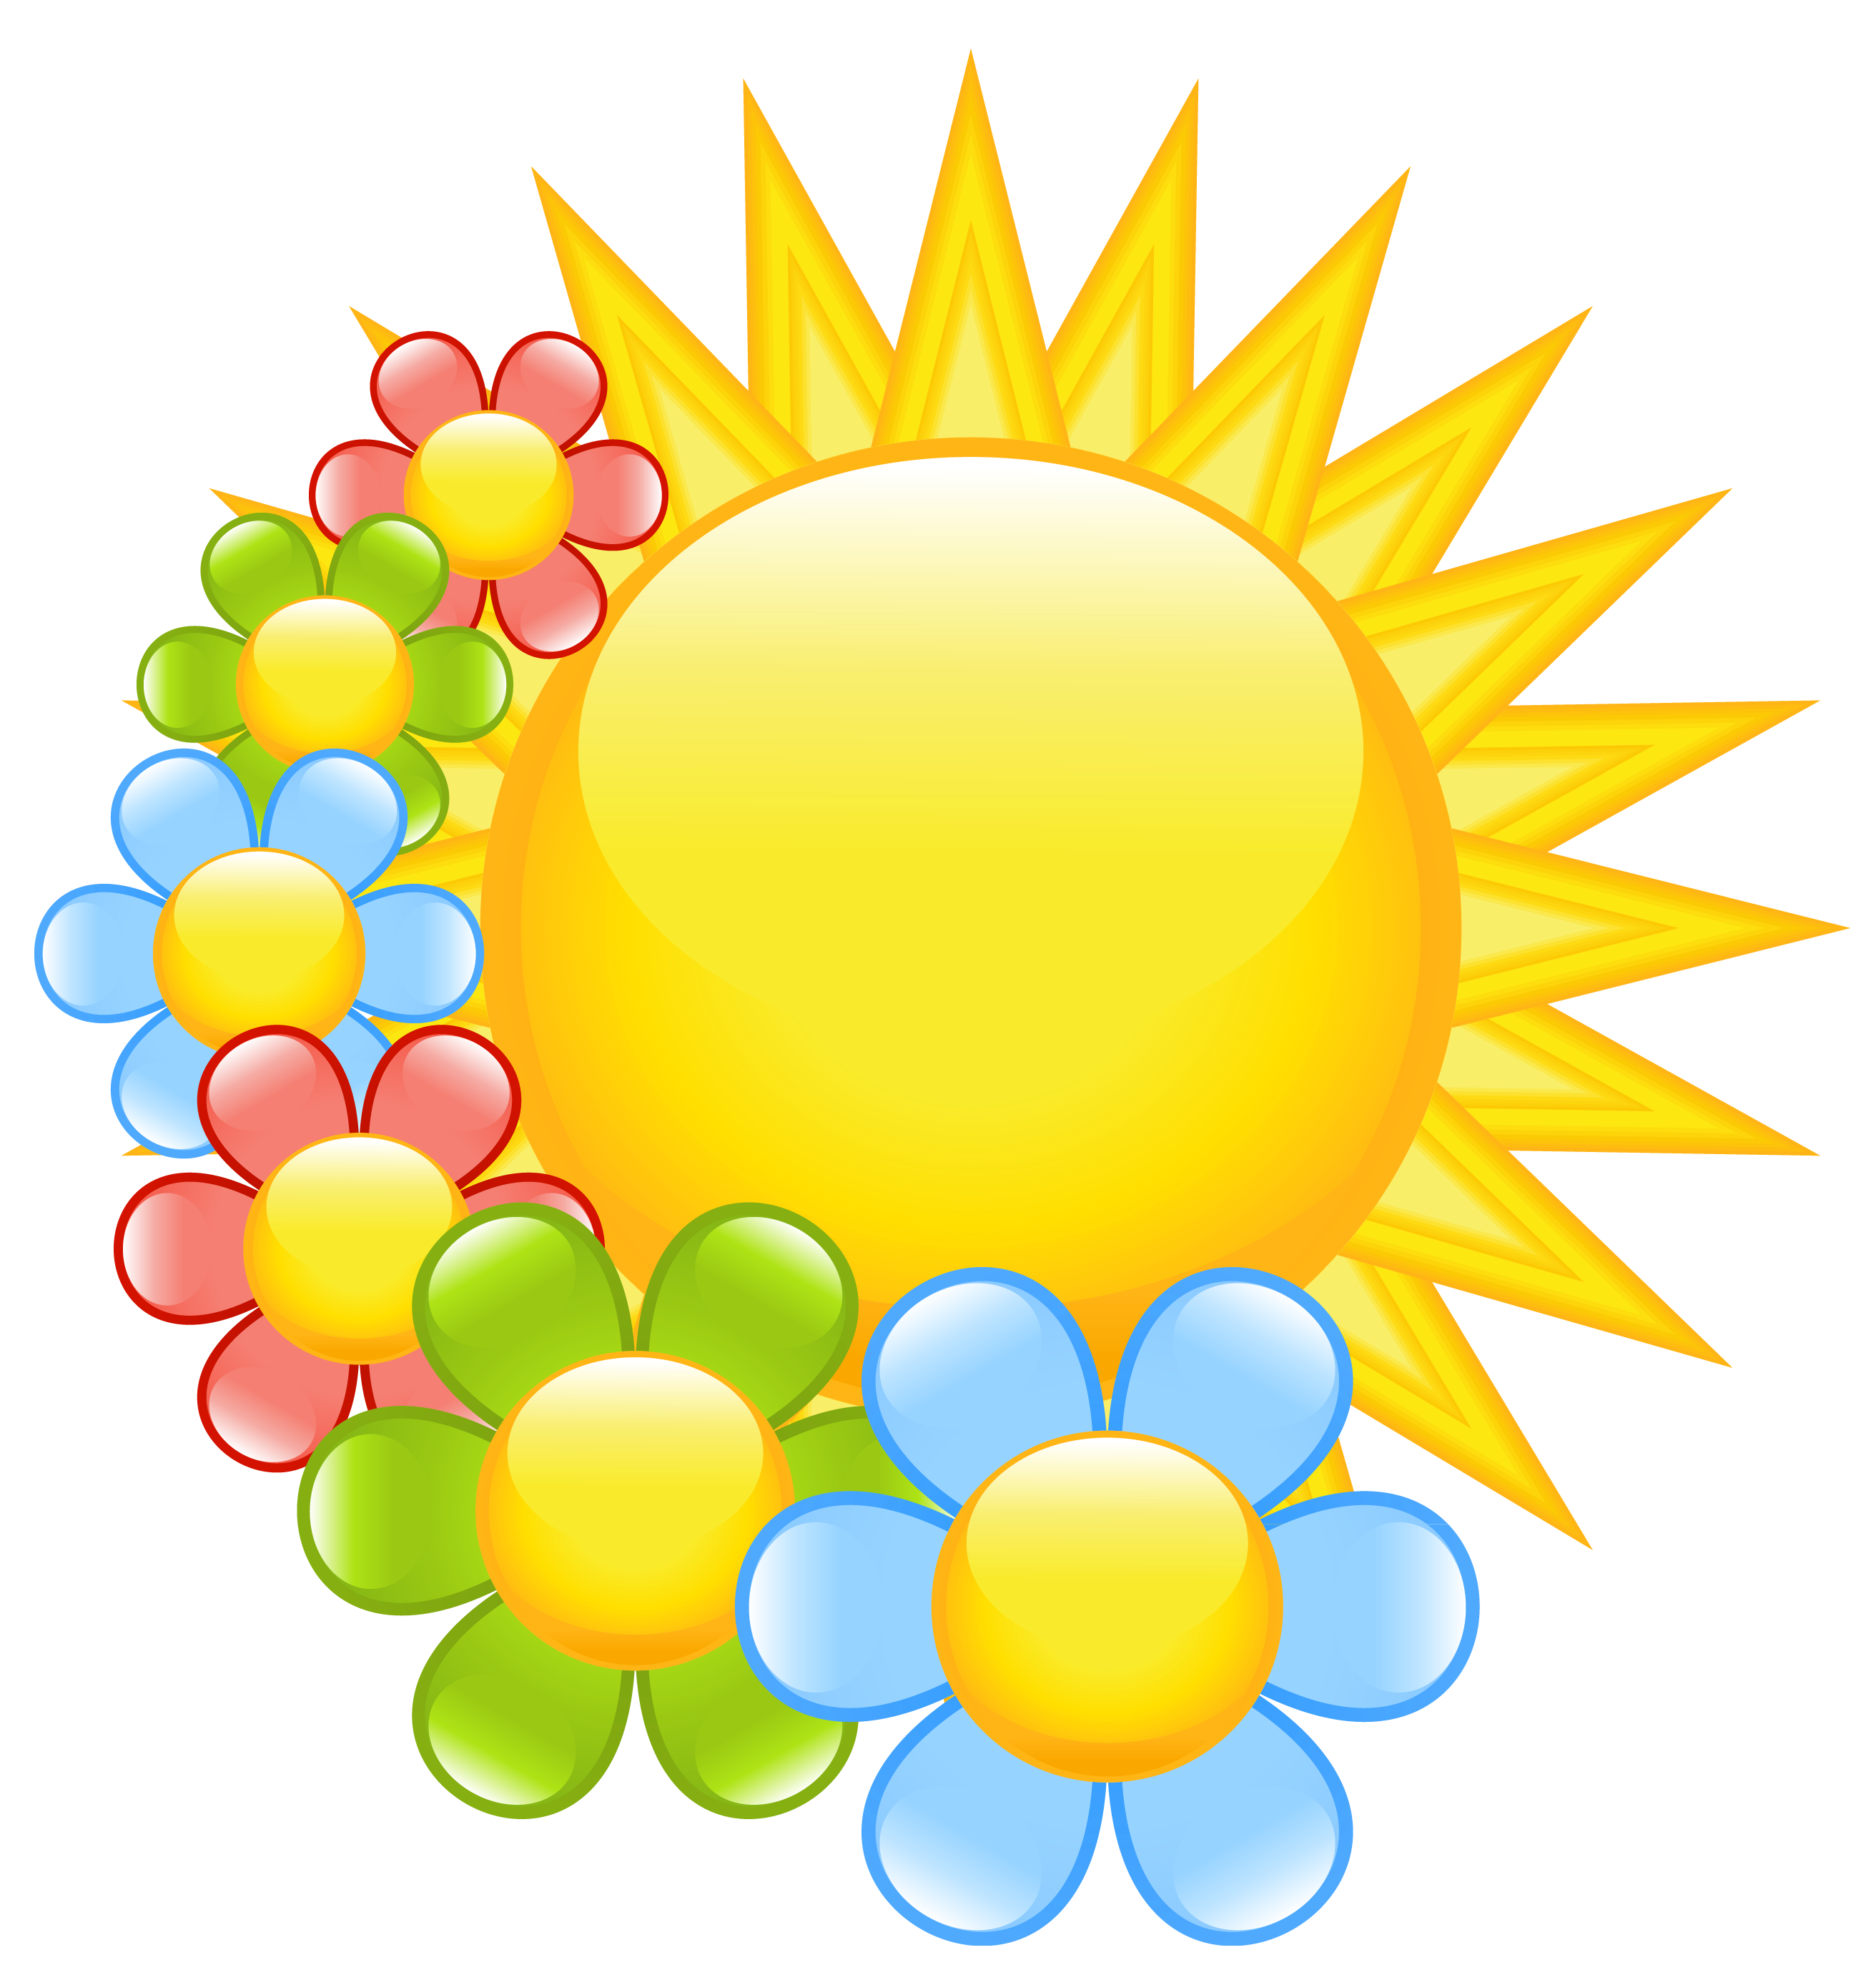 Yellow Flower clipart sunshine Spring gallery image flower art